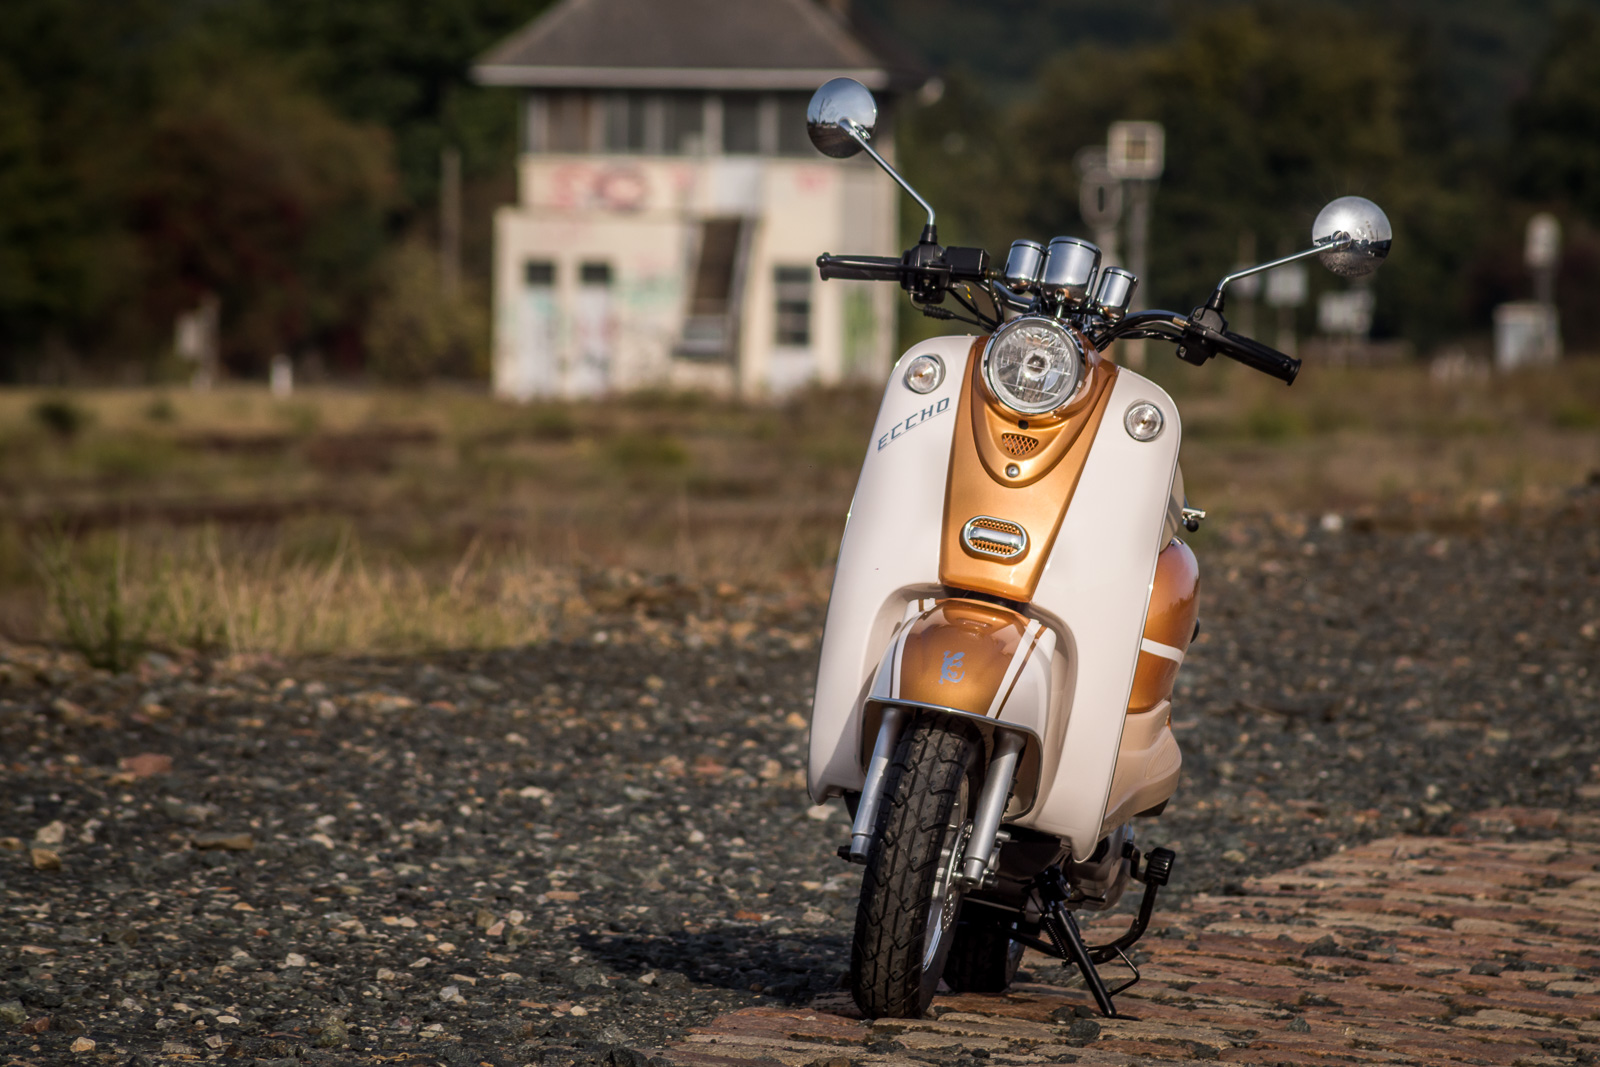 SCOOTER-50-ECCHO-RETRO-GOLDER-01